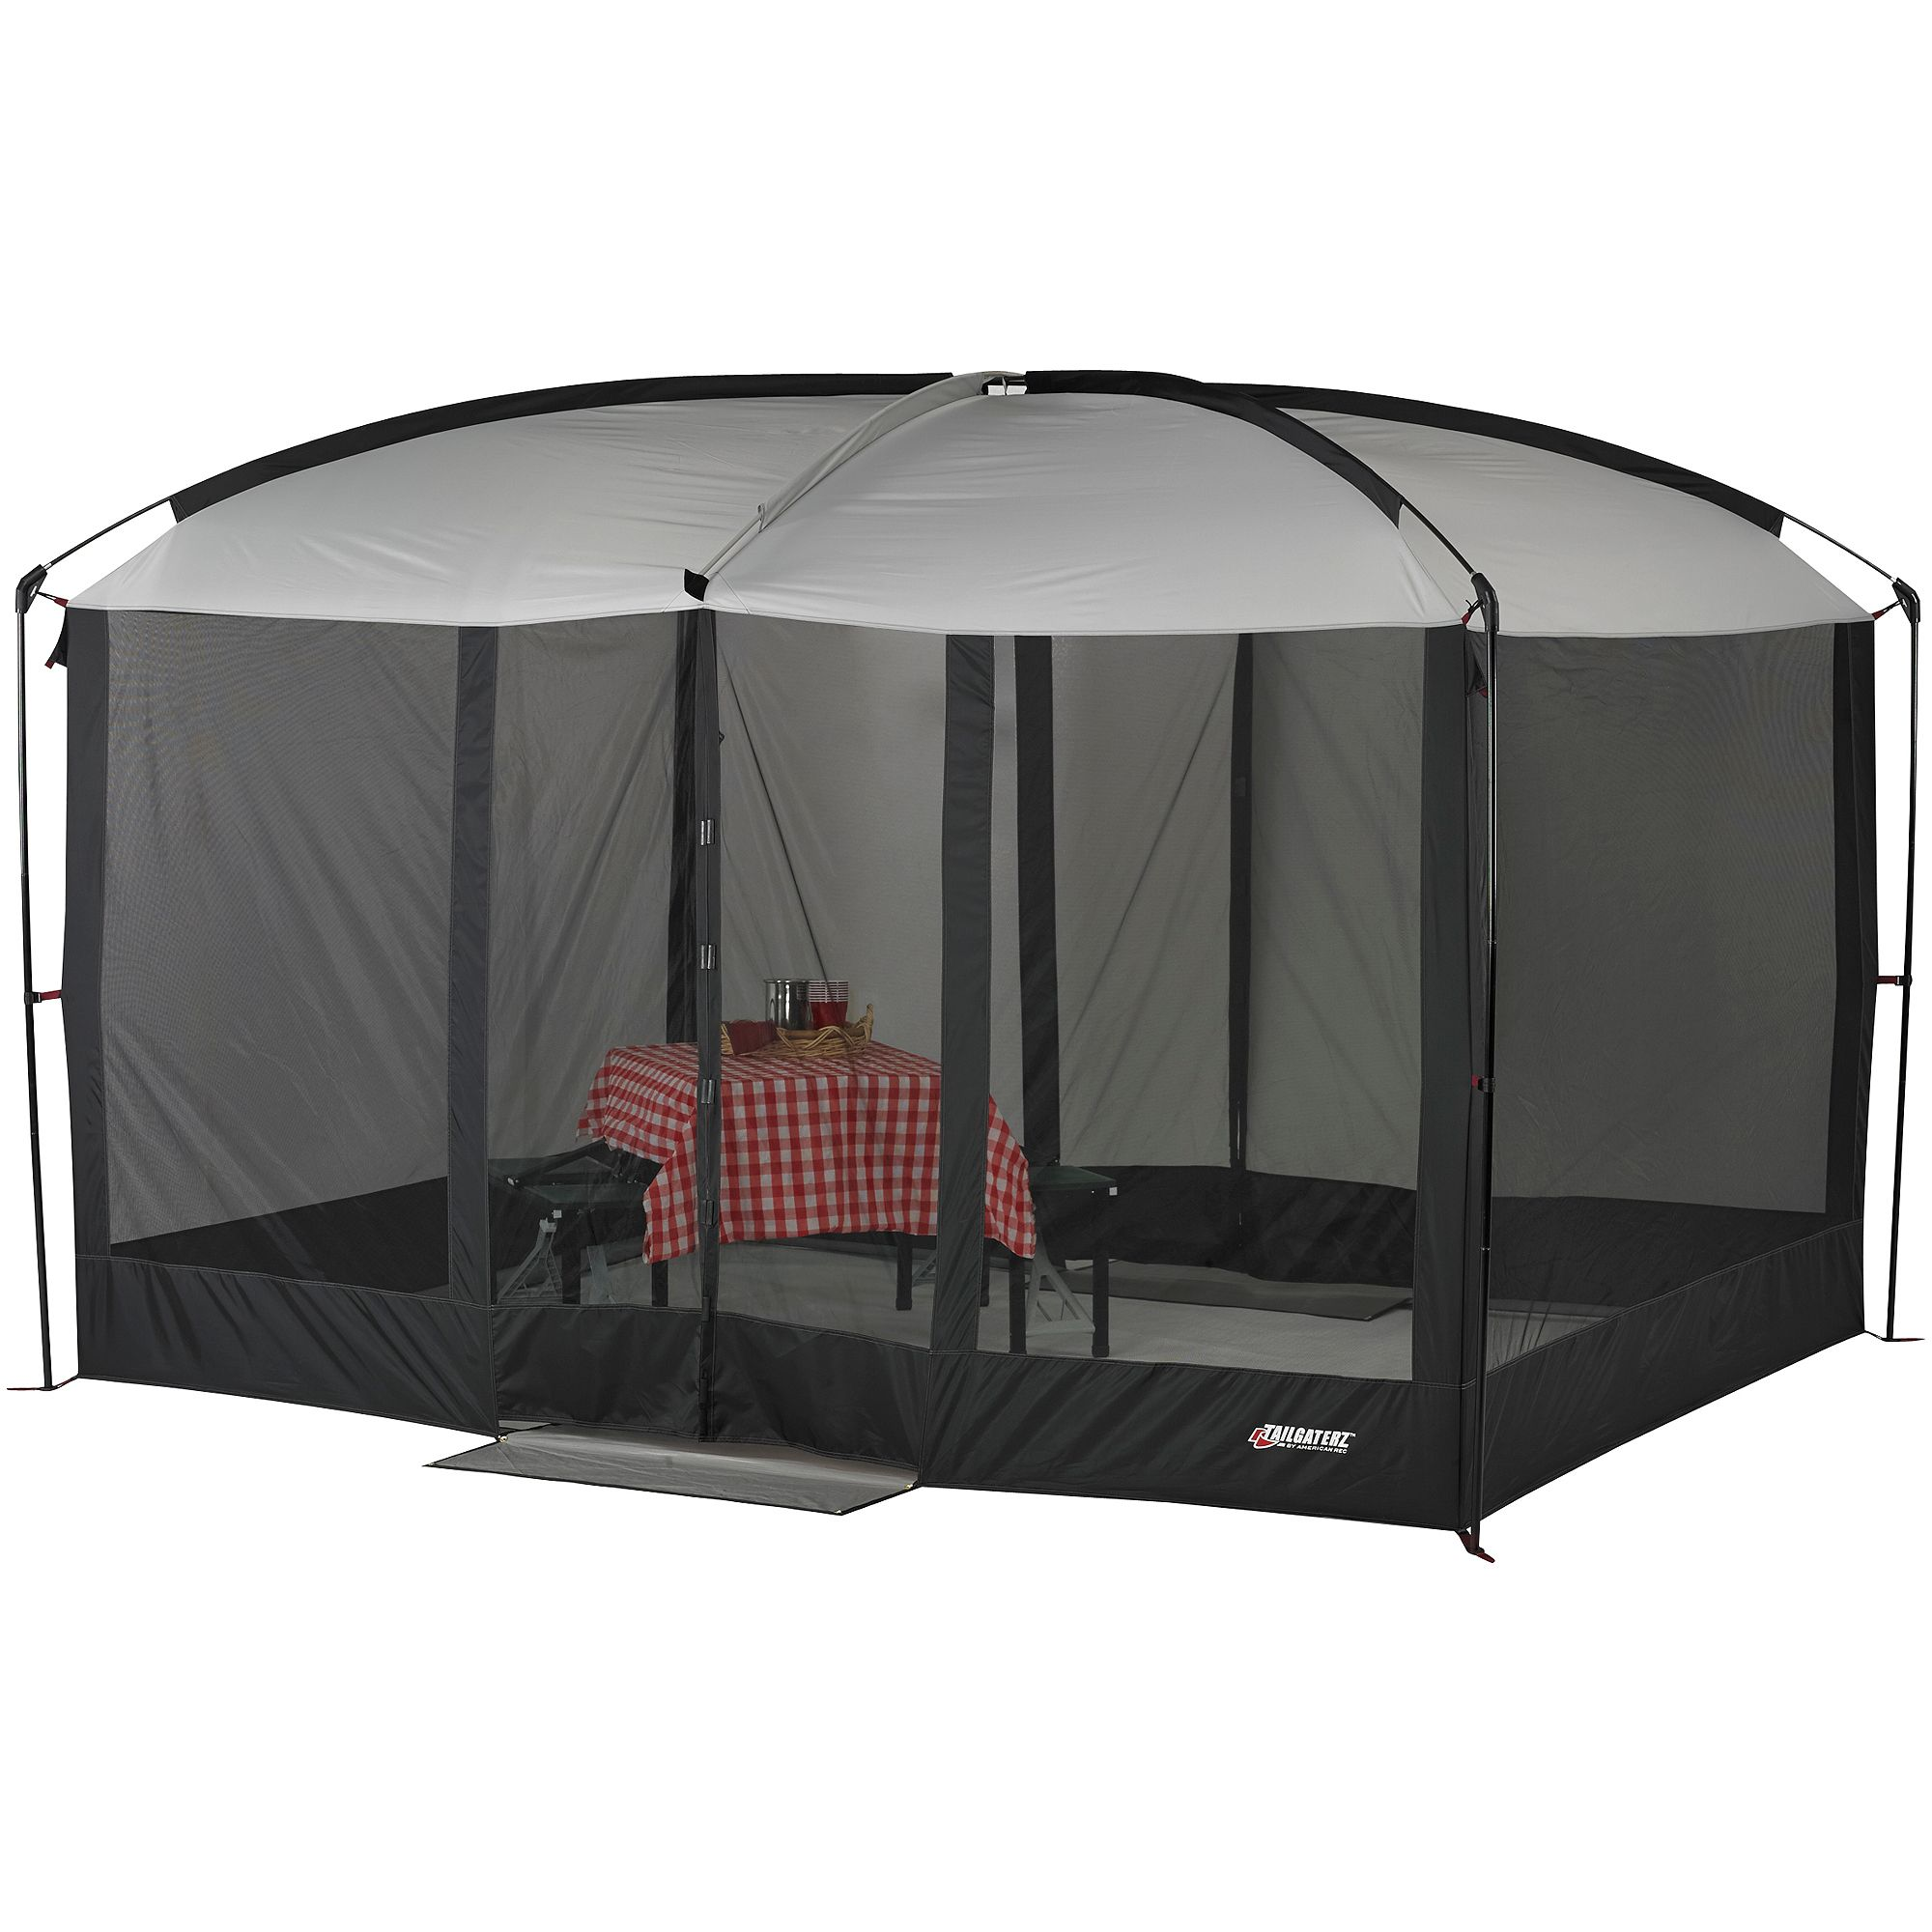 Magnetic Screen Tent House Tailgate Shelter C&ing Bbq Mosquitoes Bugs X Graphi  sc 1 st  Pinterest & Tailgaterz 11u0027 x 9u0027 Magnetic Screen House Game Day Graphite ...